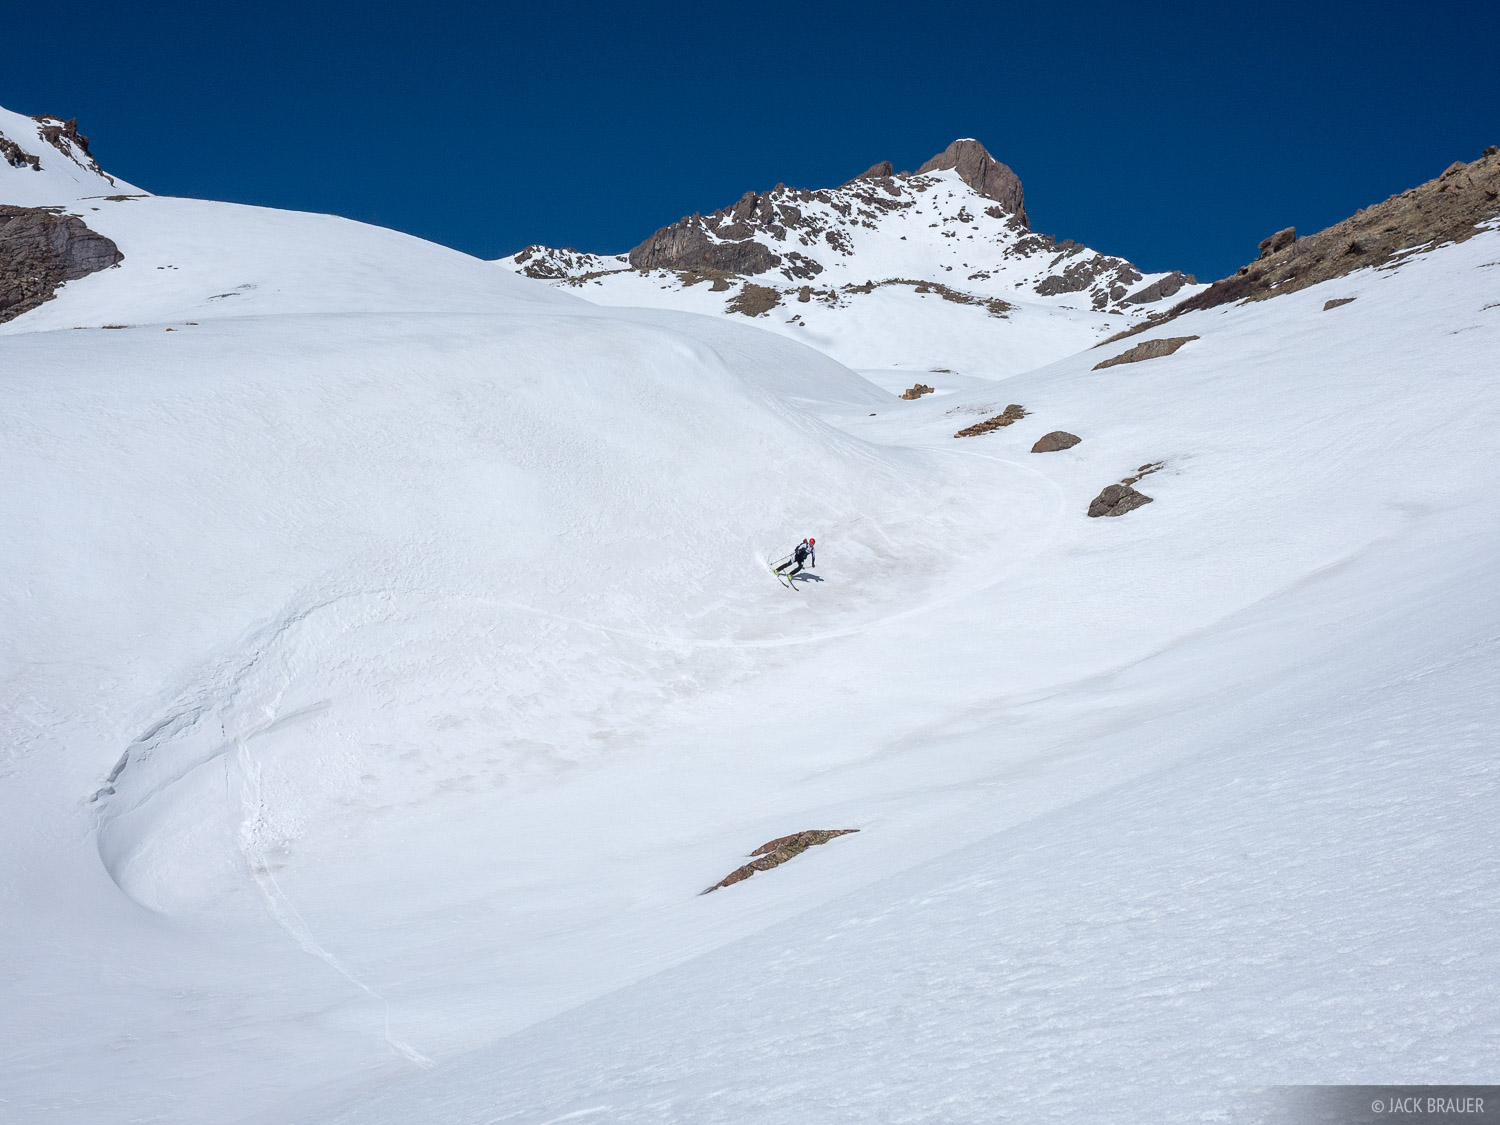 Colorado, San Juan Mountains, Uncompahgre Wilderness, Wetterhorn Peak, skiing, photo